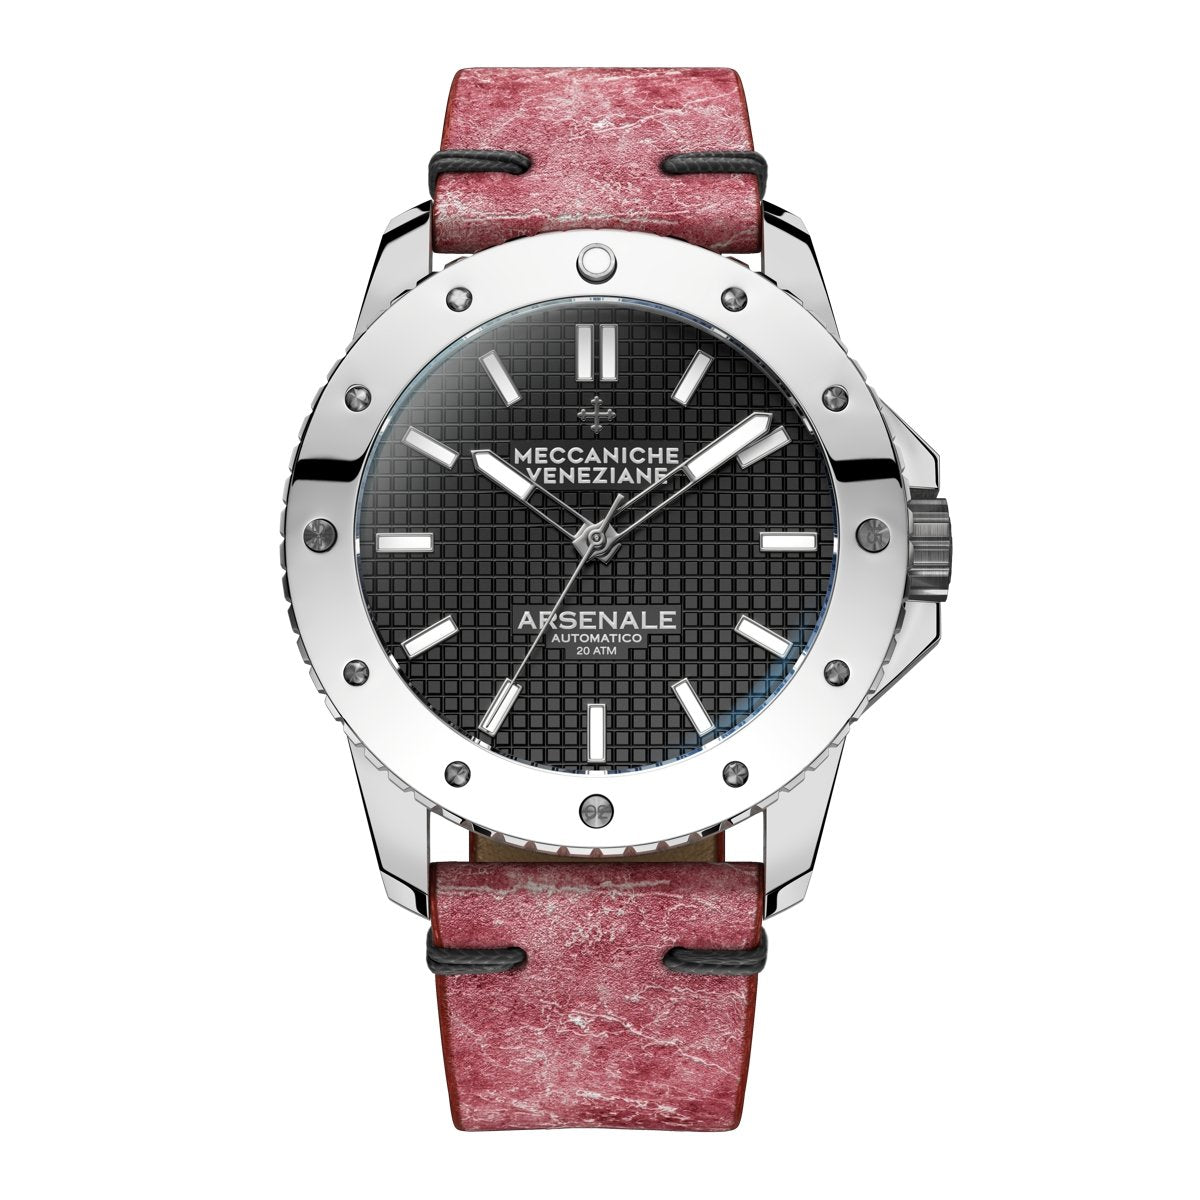 Meccaniche Veneziane Arsenale 4.0 Diver Chromed - Watches & Crystals